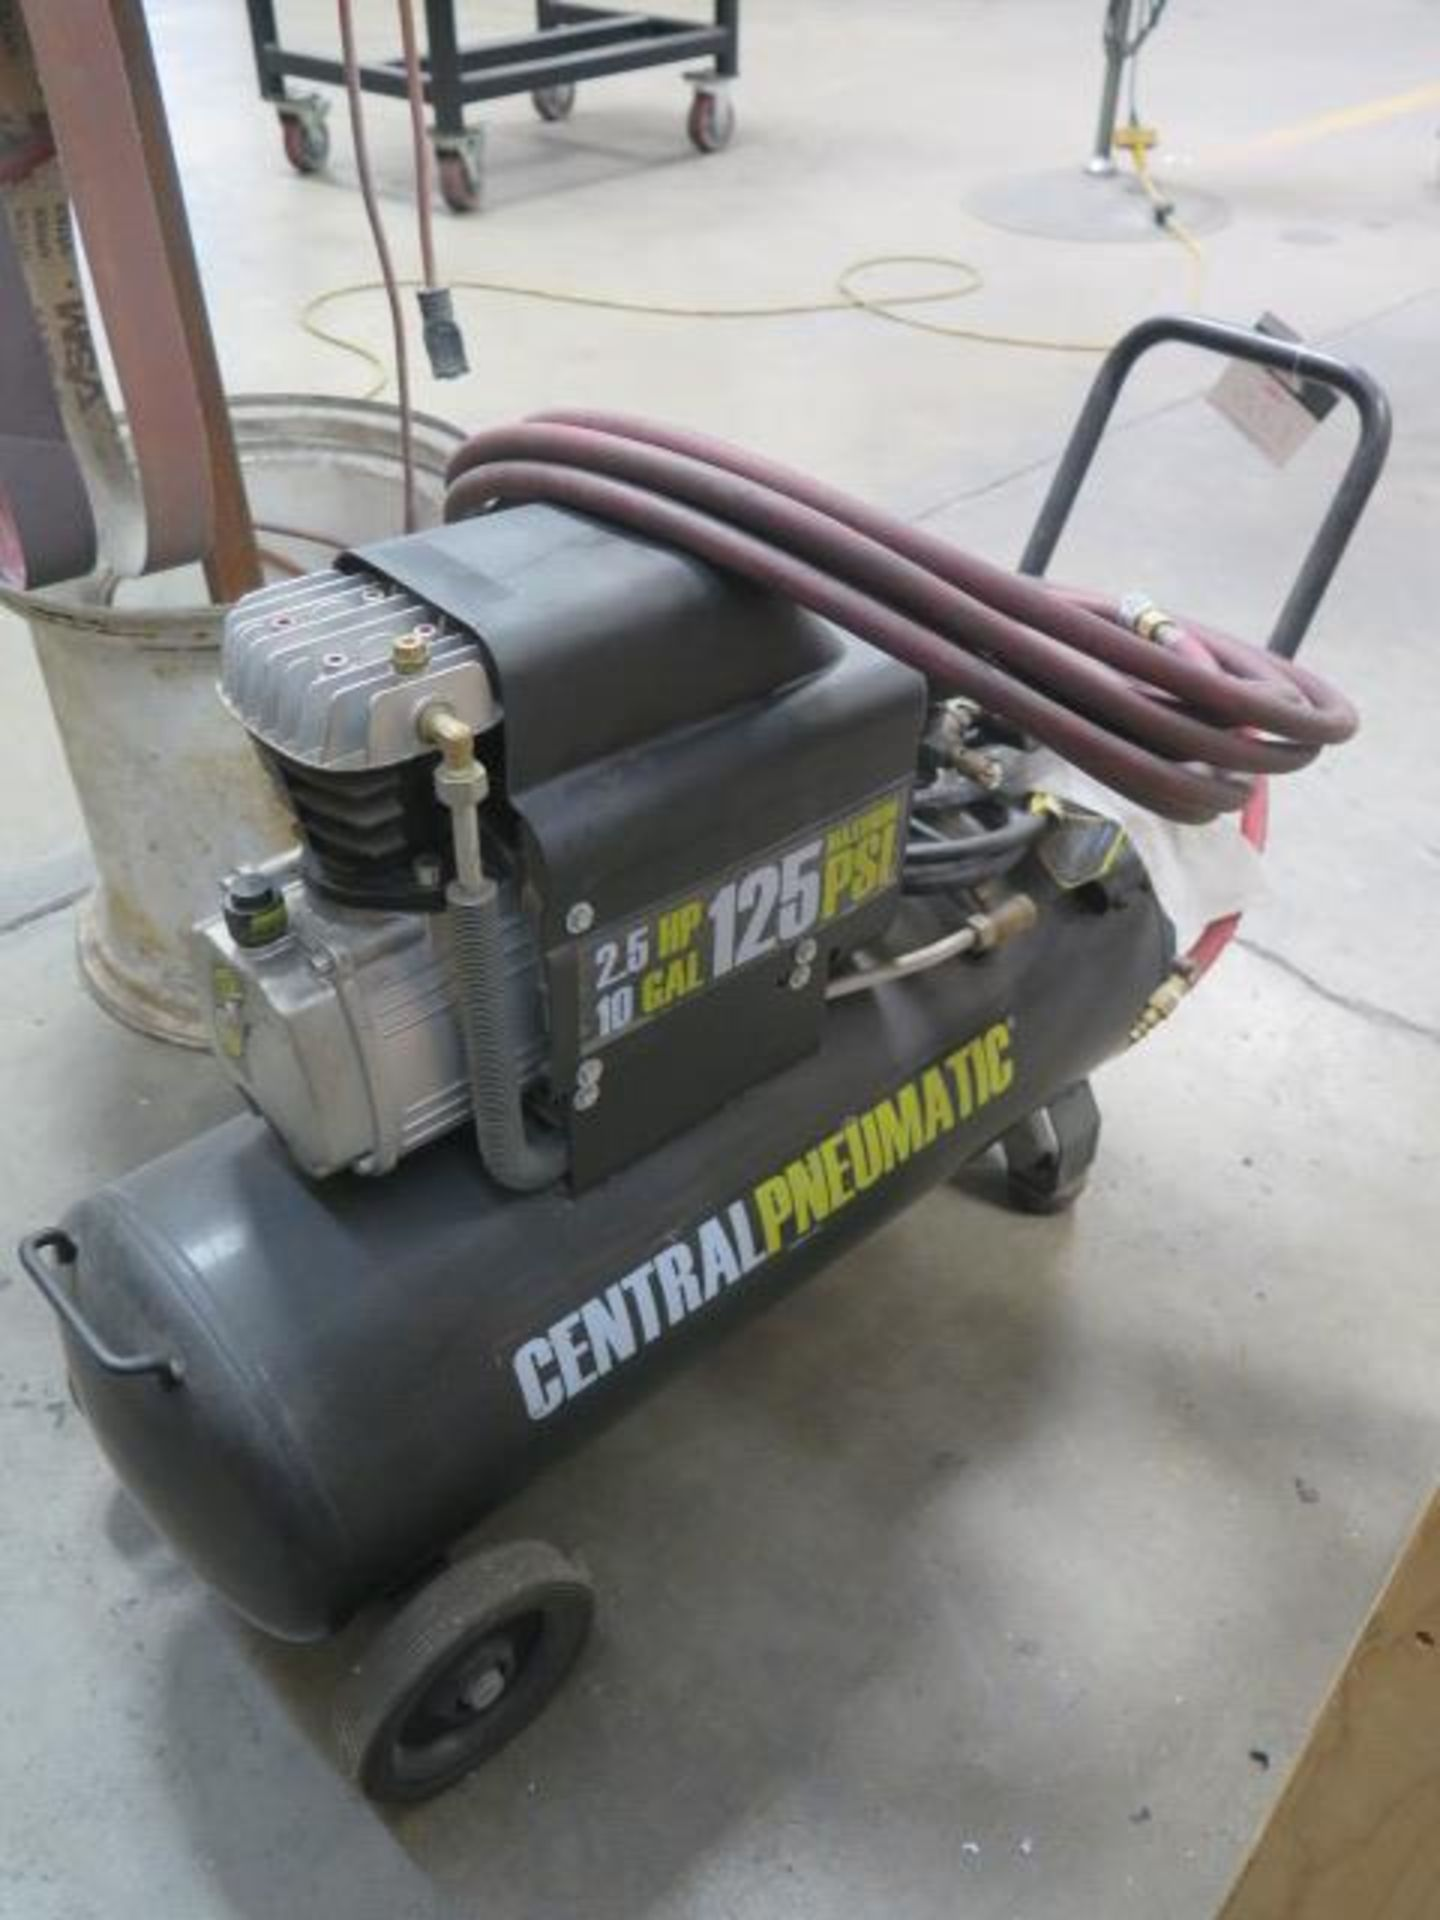 Cantral Pneumatic Portable Air Compressor (SOLD AS-IS - NO WARRANTY) - Image 2 of 4